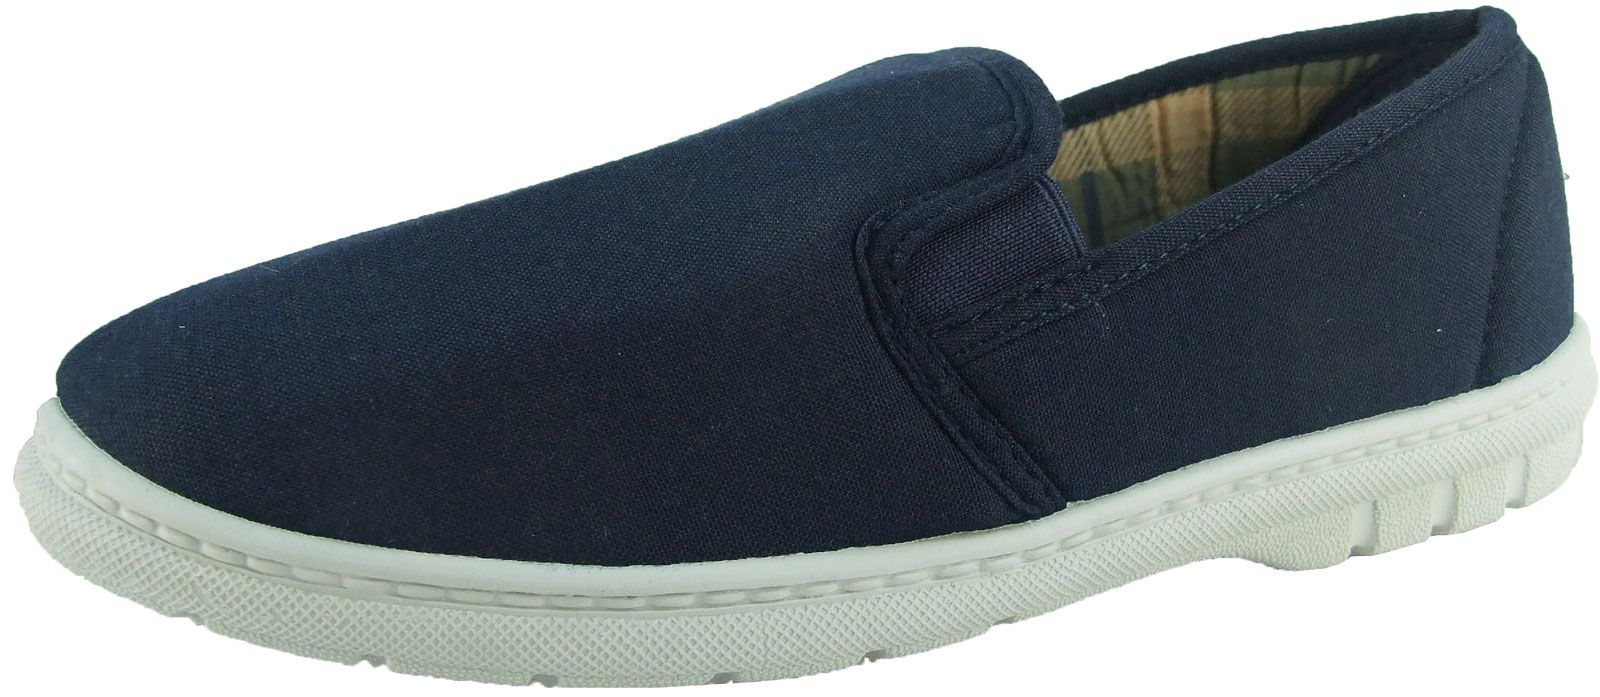 Canvas Beach Twin Gusset Shoes ~ Comfort Padded Inners ~ Navy Boat Mens Deck